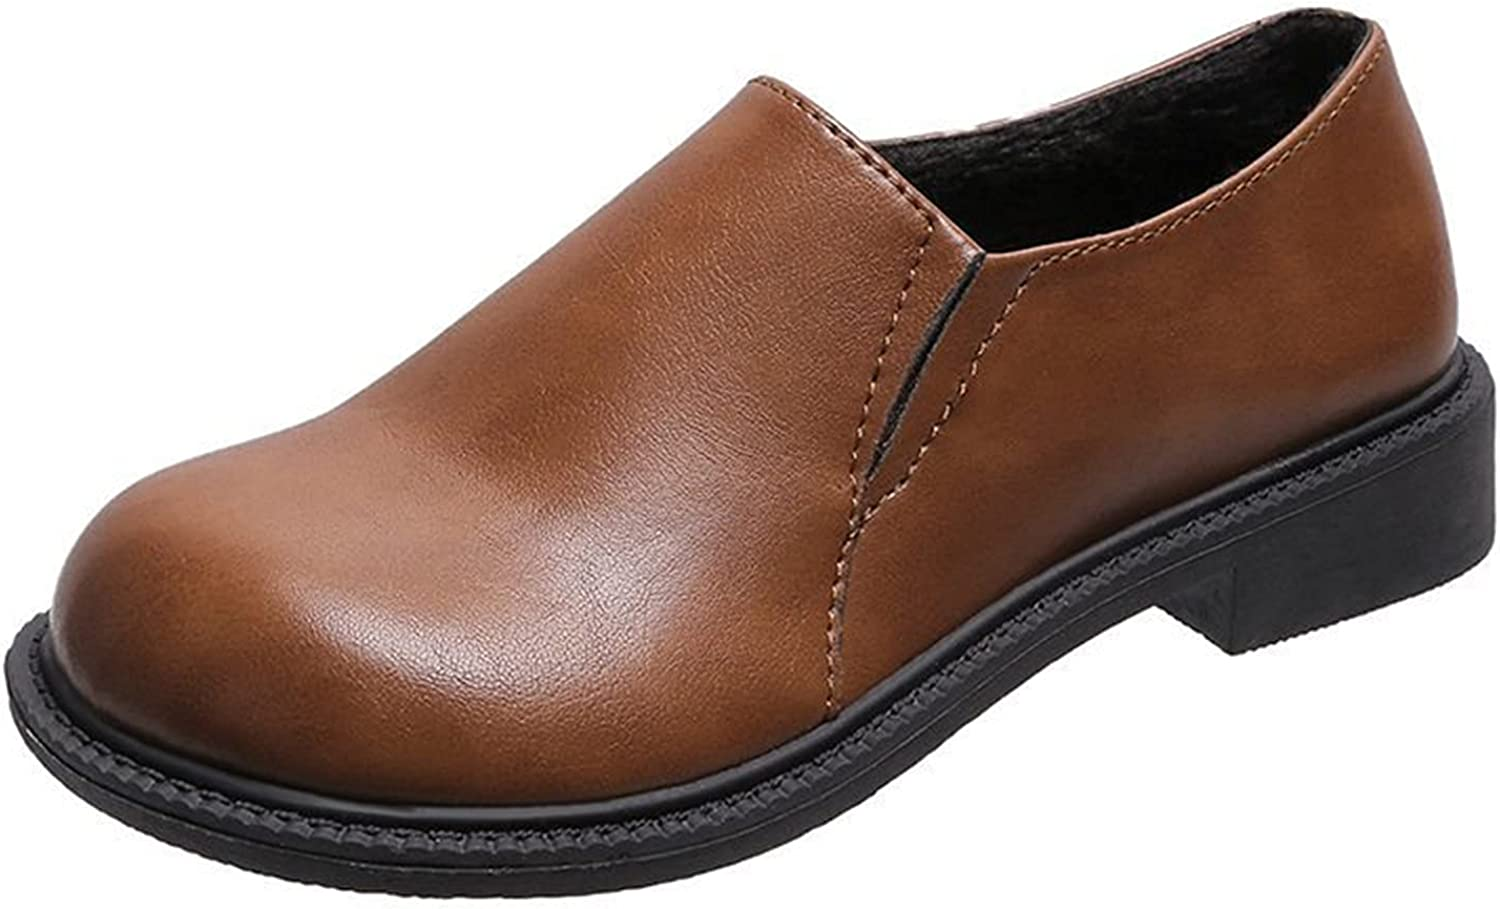 Women's Genuine Leather San Diego Mall Oxford Dress Shoes Up Popular overseas Flats Lace